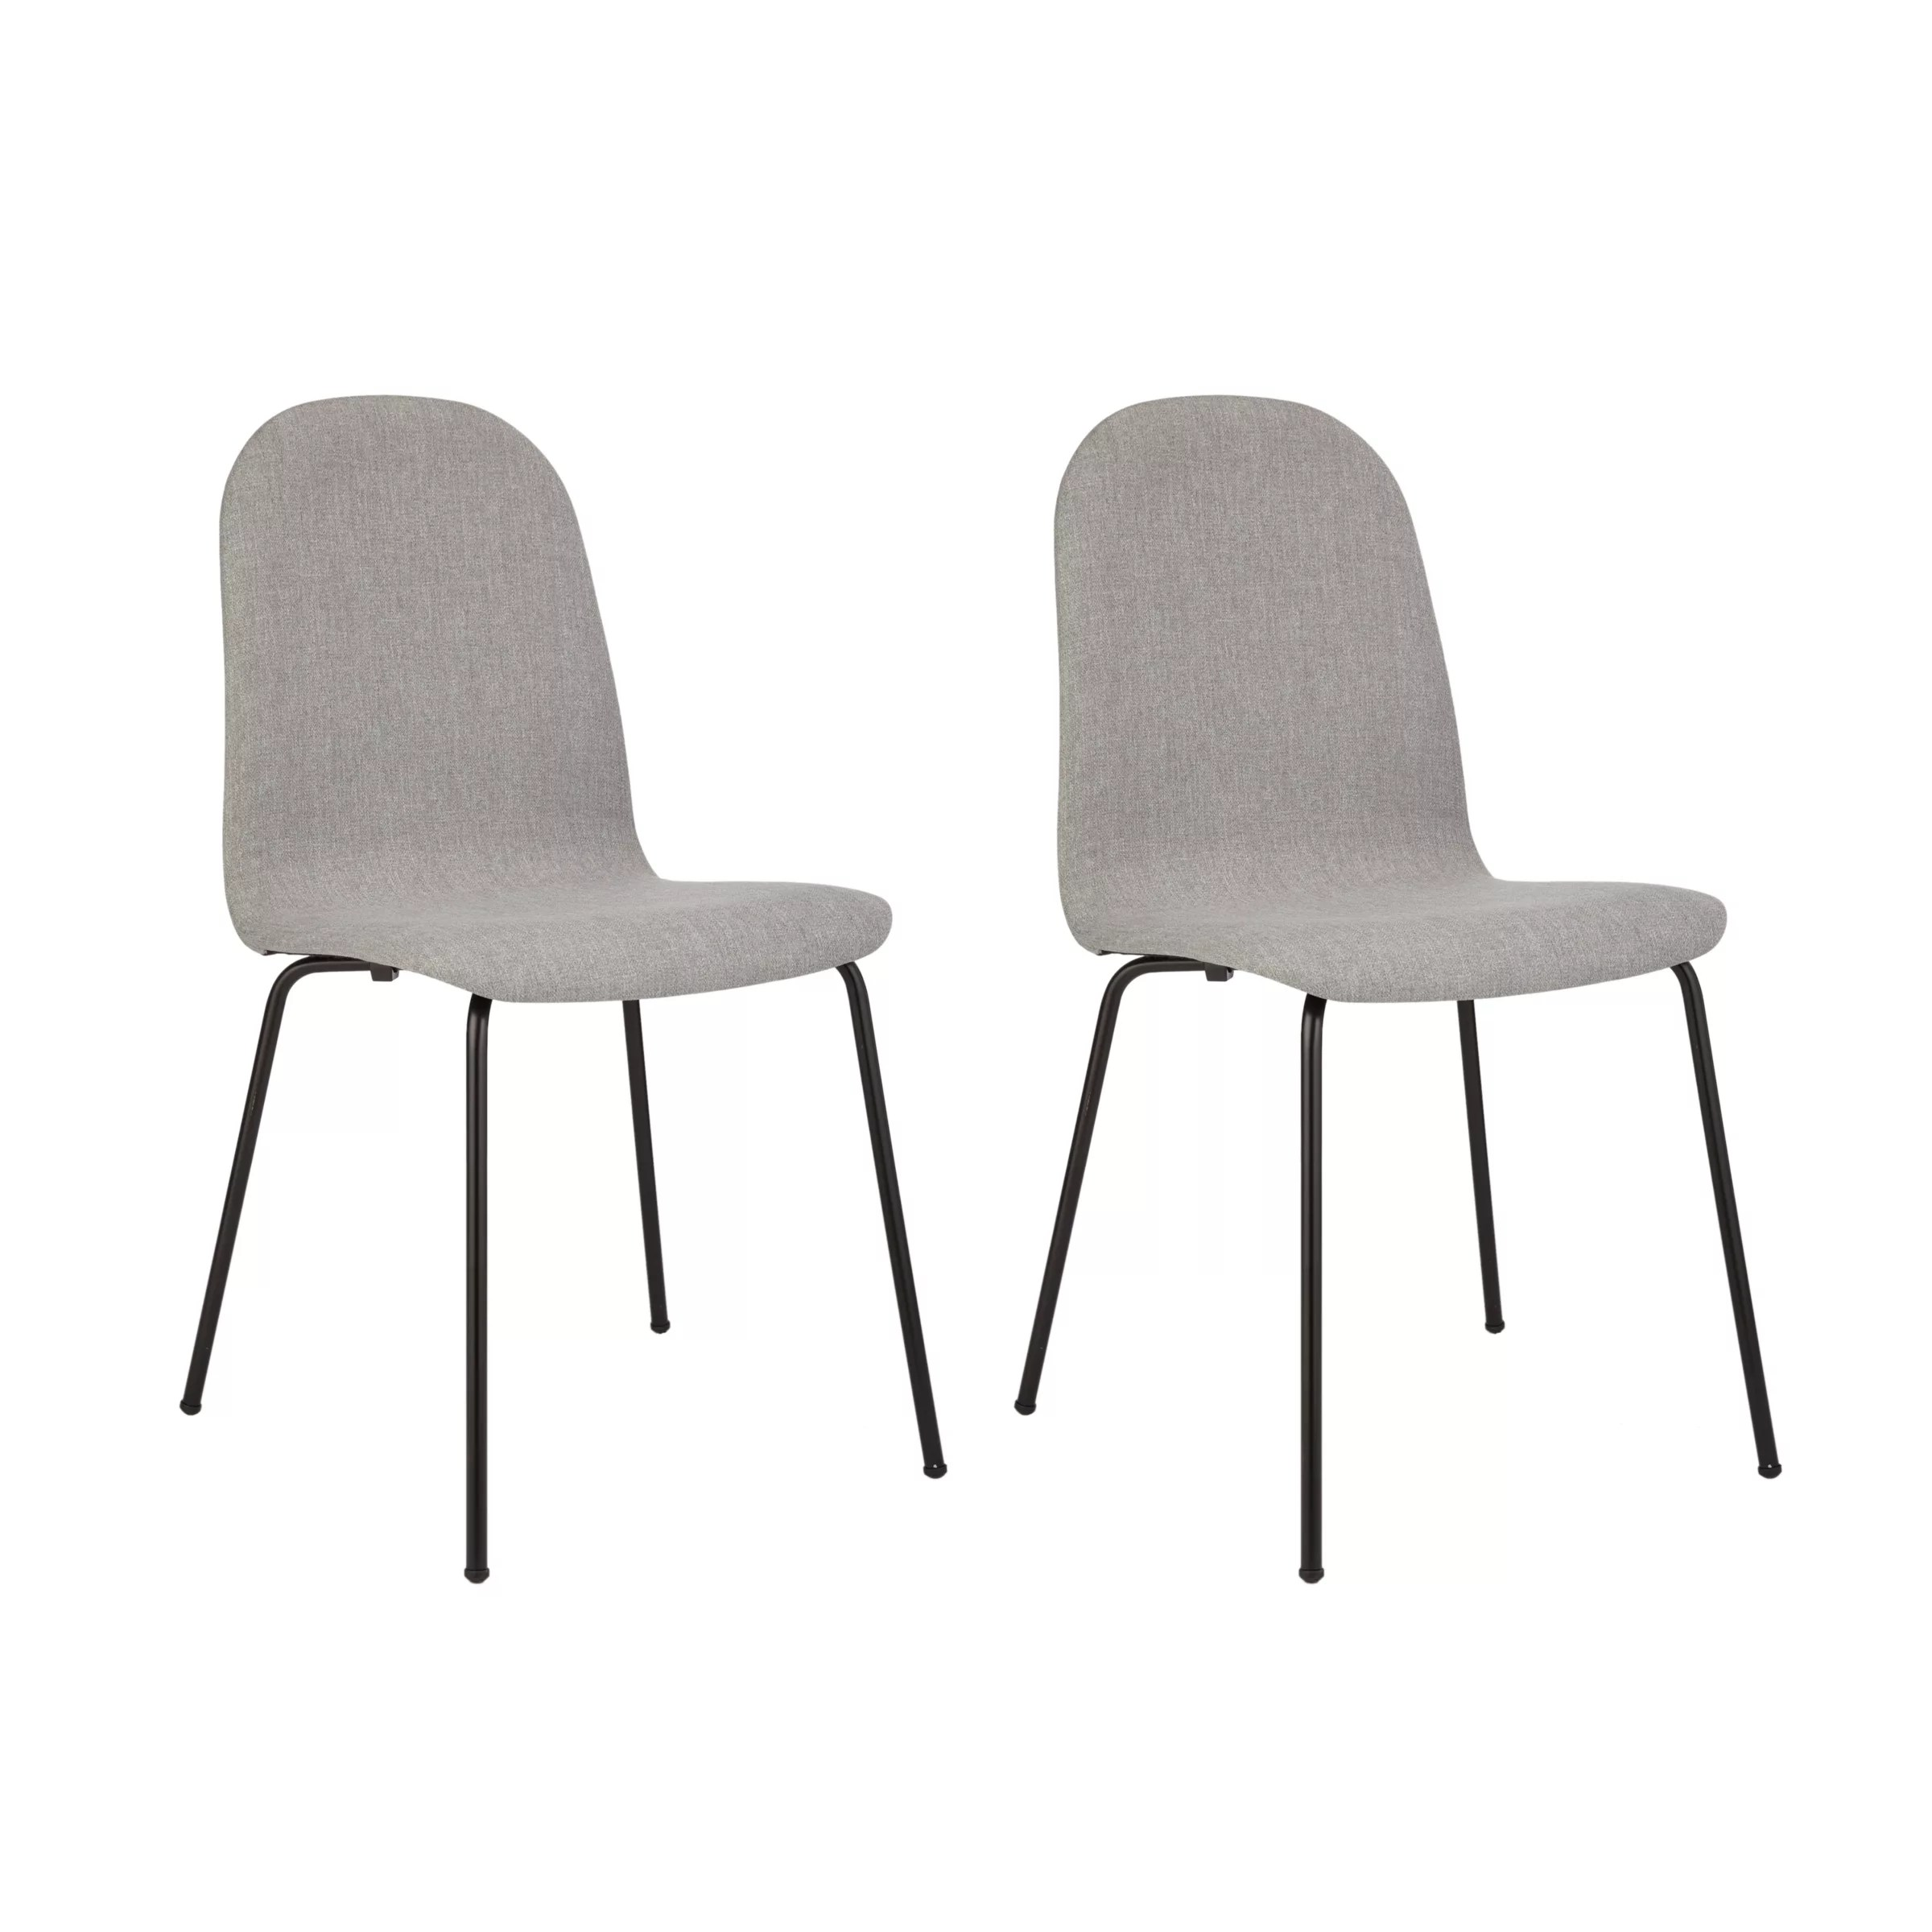 alba slat back dining chair modern counter height chairs | table john lewis